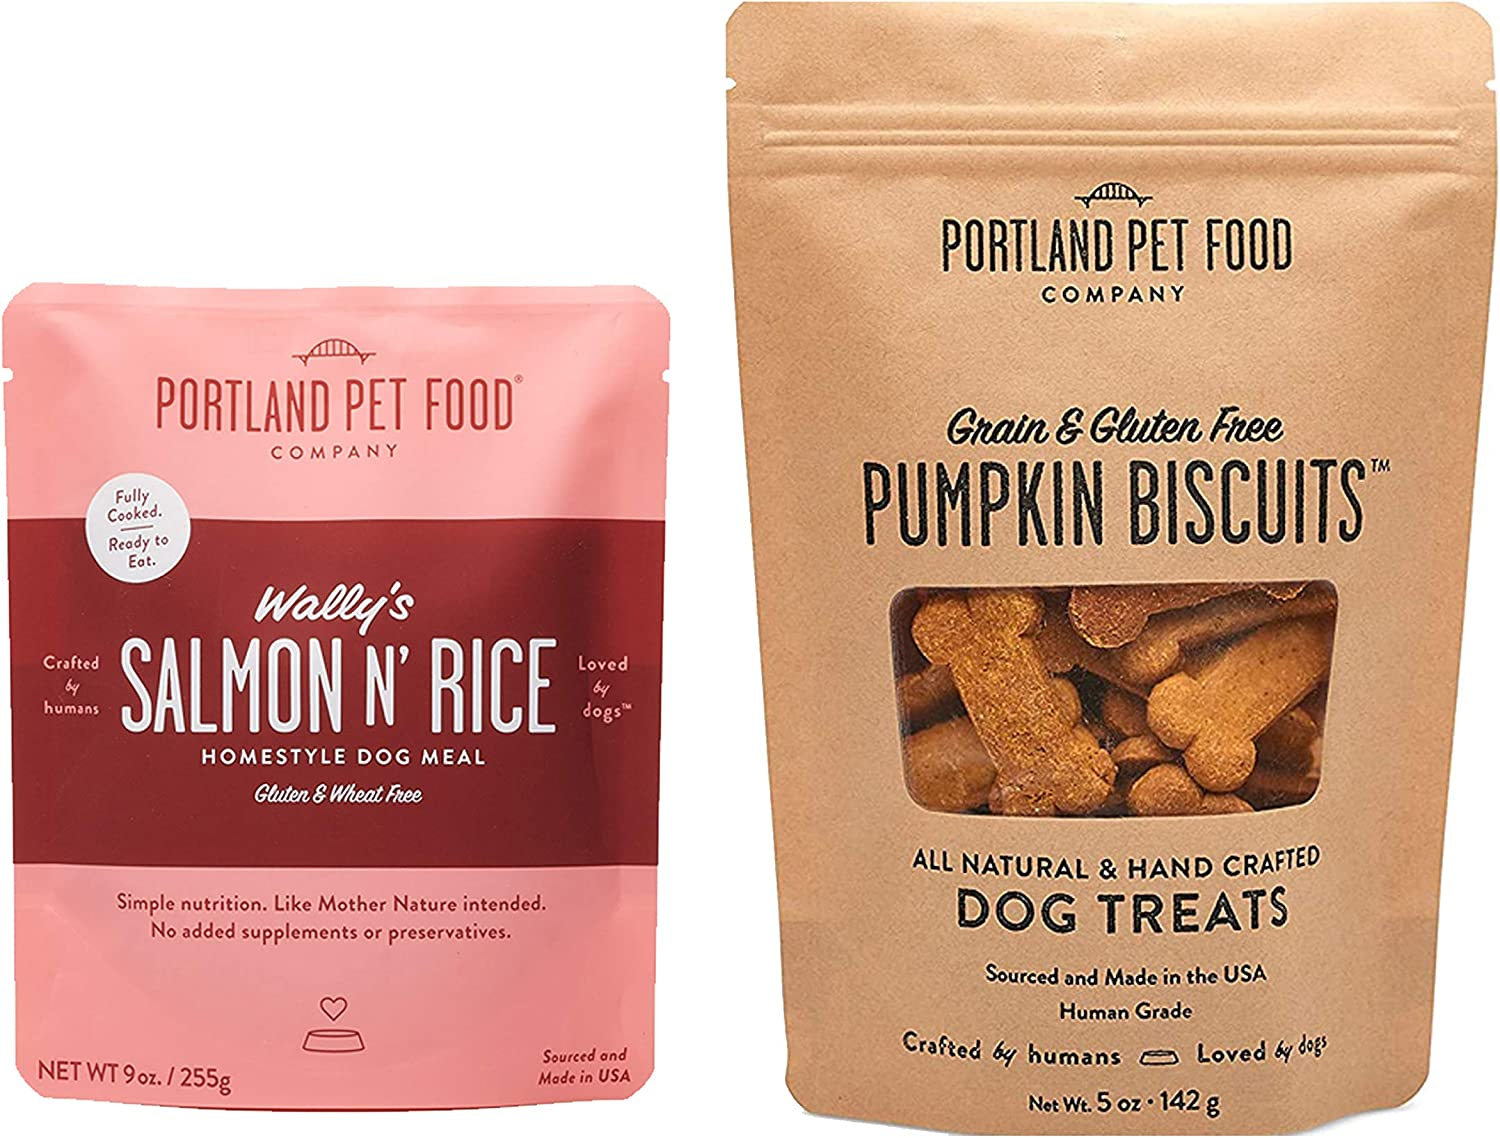 Portland Pet Food Company Holiday Dog Gift Combo Pack - Human Grade (1 x Meal Pouch & 1 x Biscuit Pack)